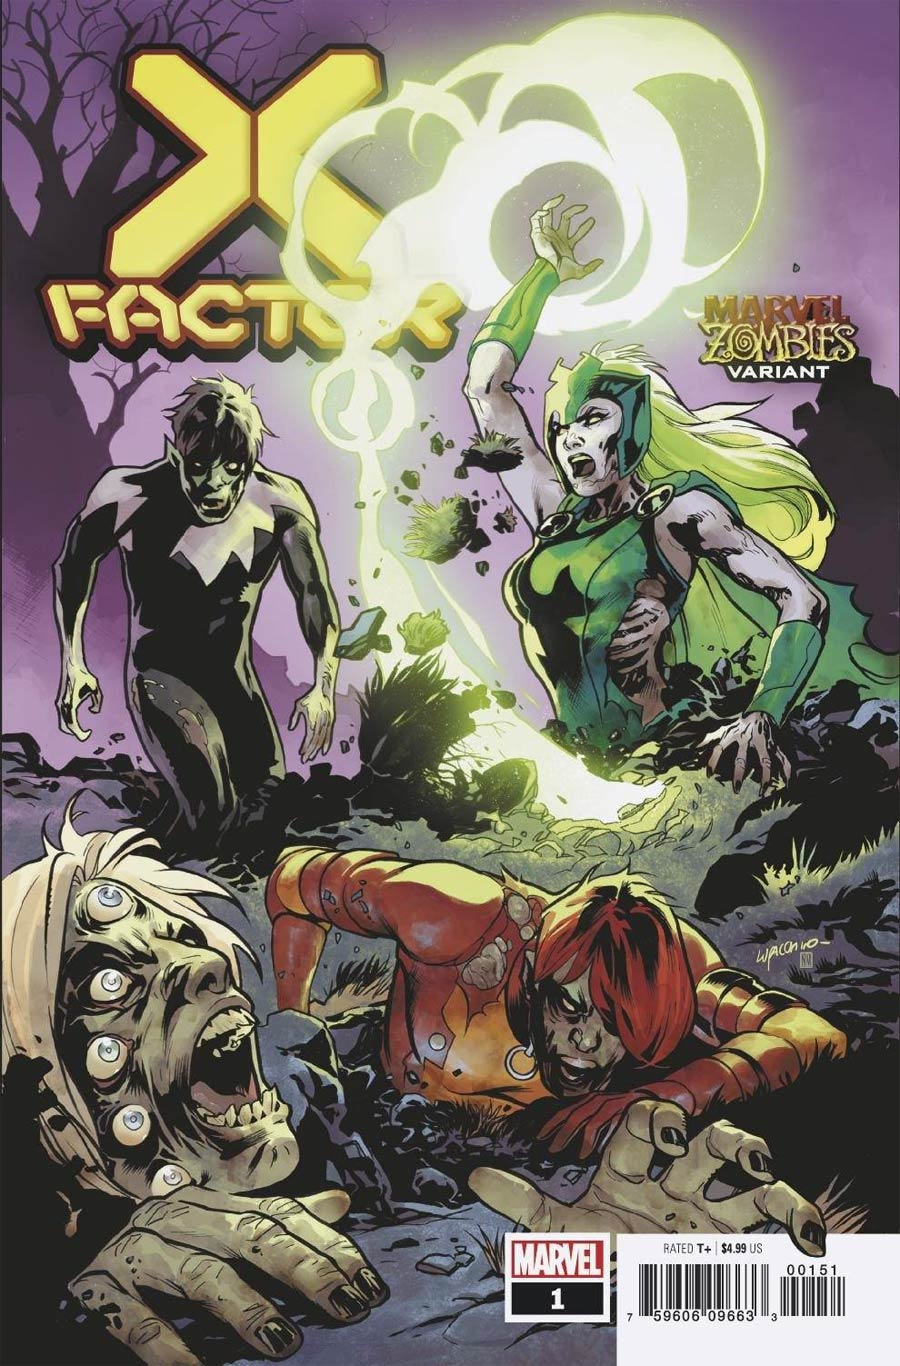 X-Factor Vol 4 #1 Cover B Variant Emanuela Lupacchino Cover